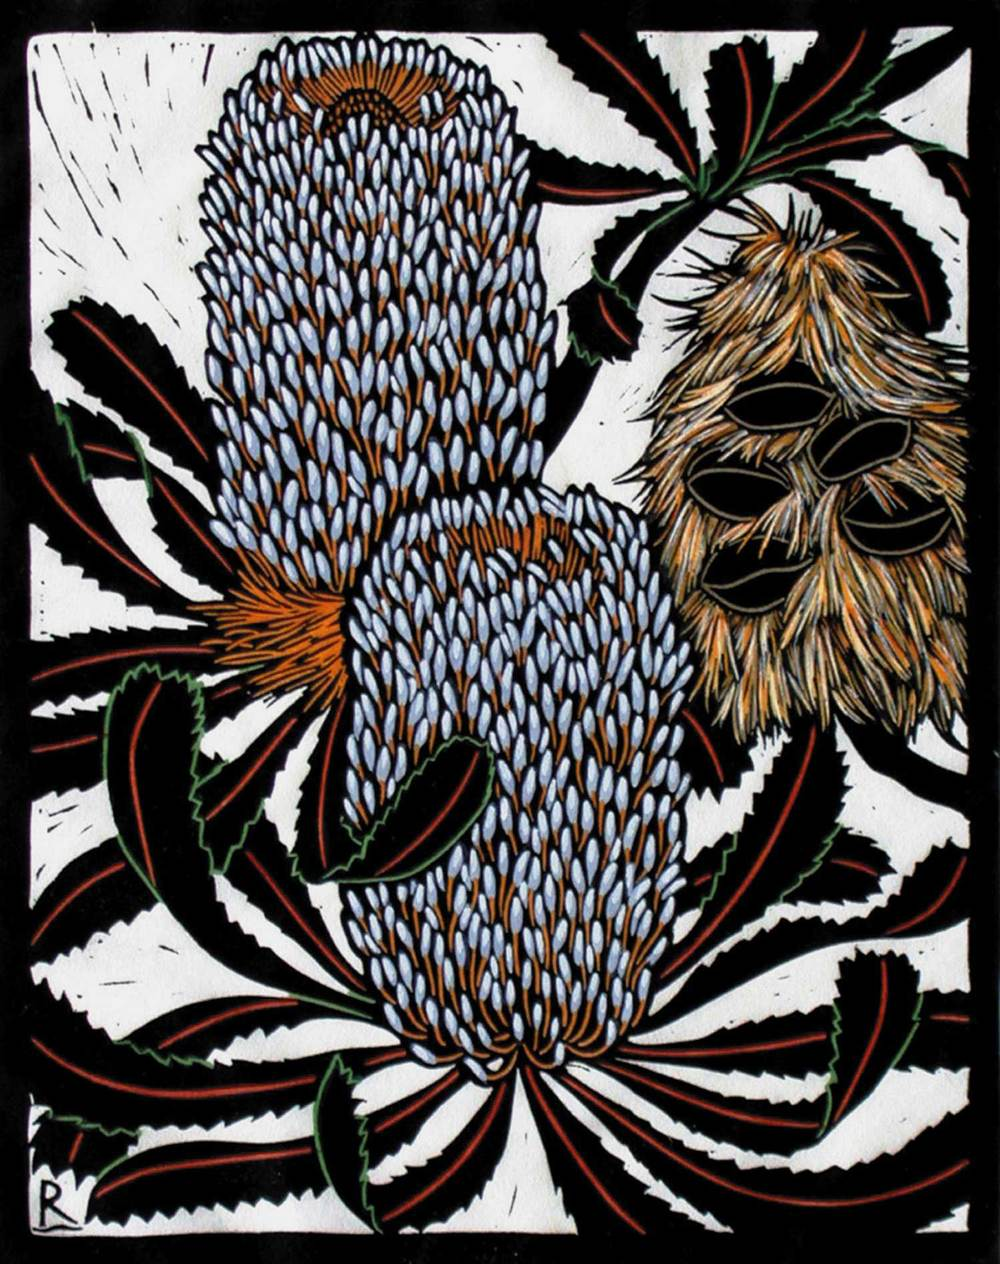 BANKSIA SERRATA 28 X 22 CM    EDITION OF 50 HAND COLOURED LINOCUT ON HANDMADE JAPANESE PAPER $550